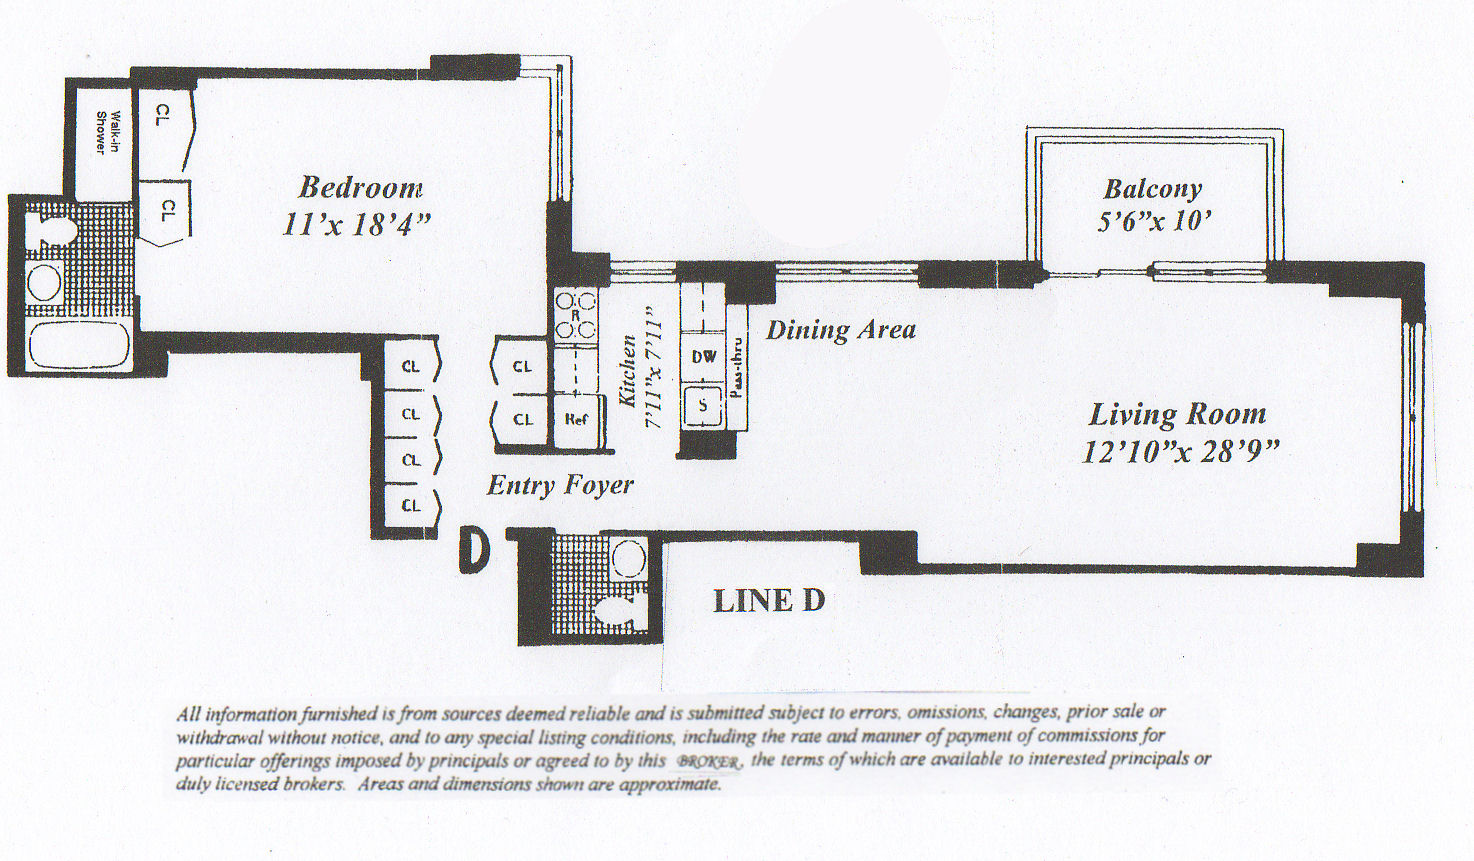 Index on Bathroom Laundry Room Floor Plans